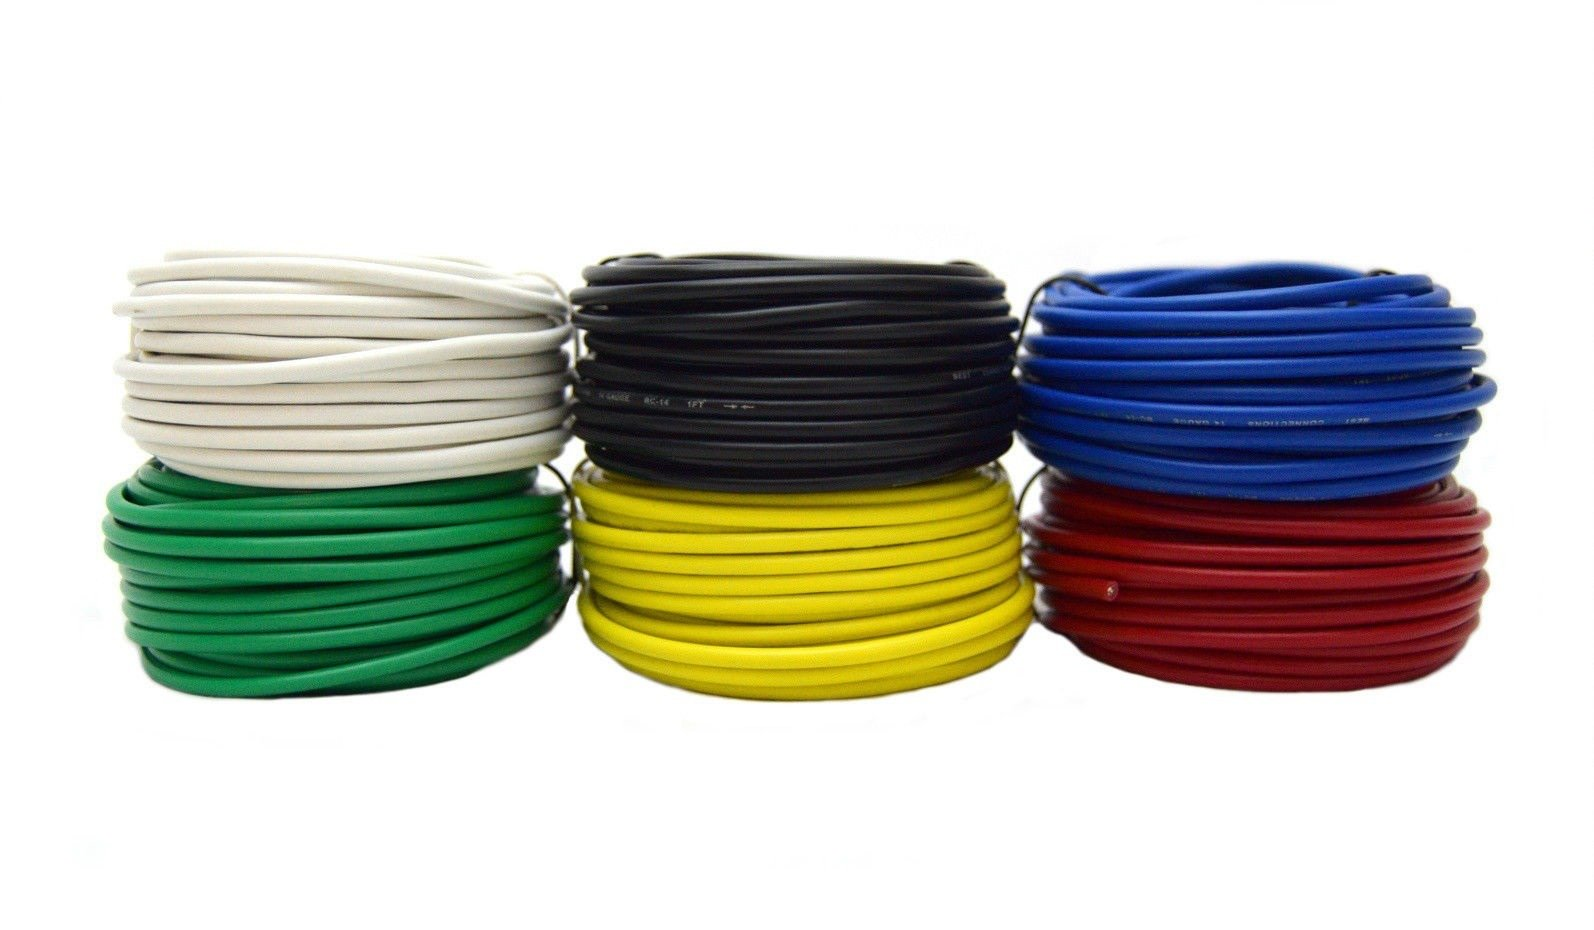 14 GA Single Conductor Stranded Remote Primary Wire 12V 6 Rolls 25 Feet Each 150' Total